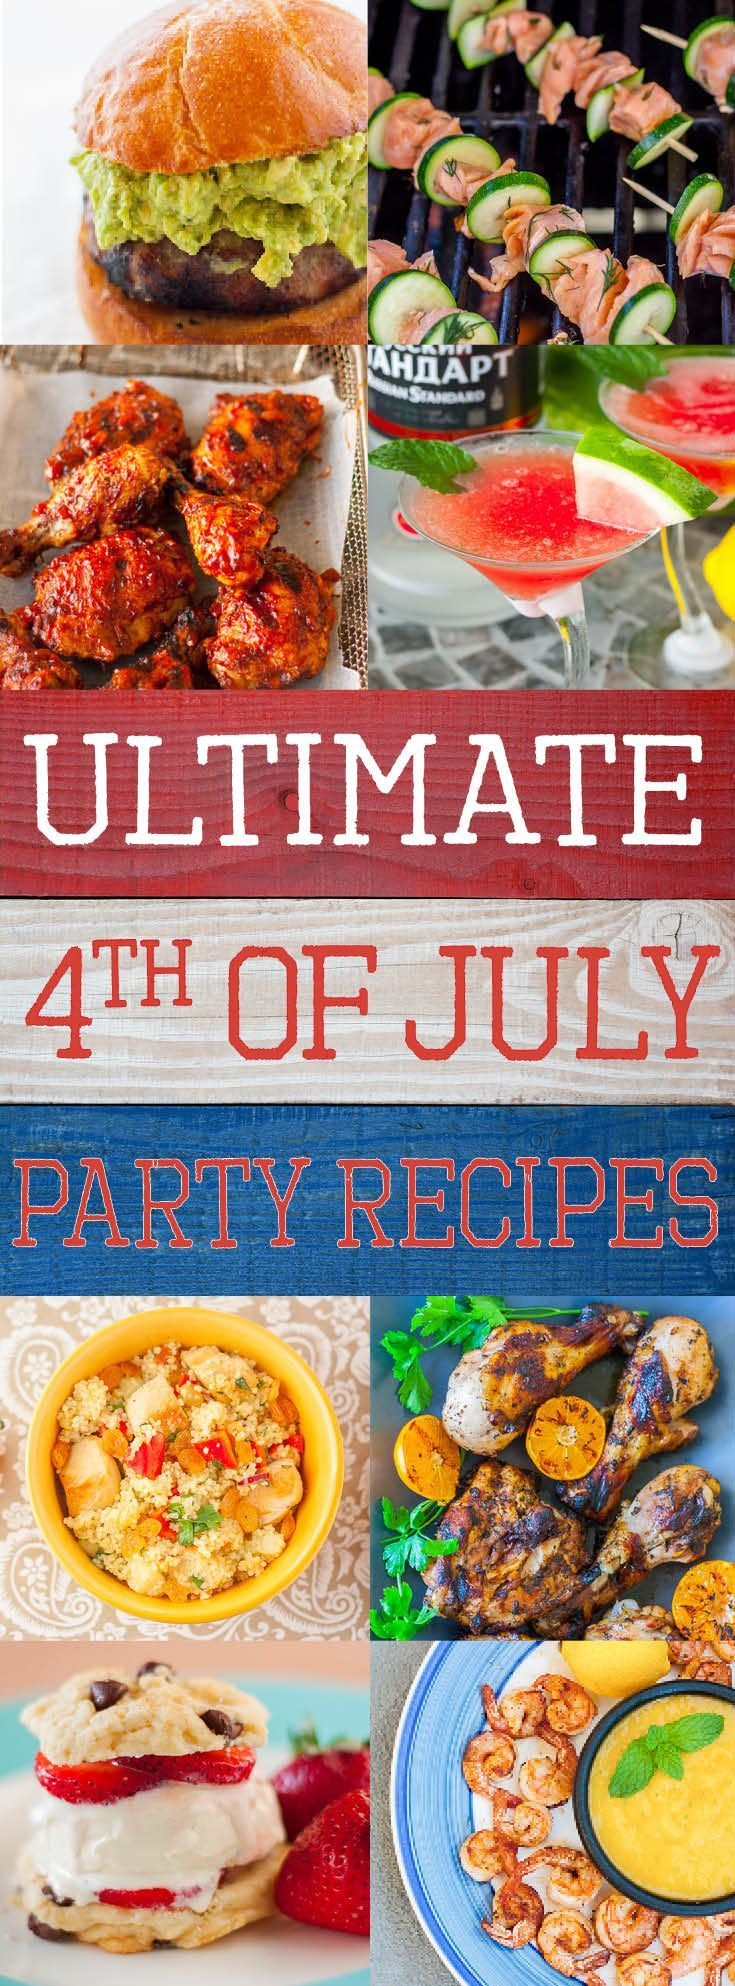 Perfect 4th of July Party menu recipes roundup from Plating Pixels. Grilled, barbecued, sides and dessert recipes. Chicken, stuffed burger, salmon, desserts and a summer cocktail. - www.platingpixels.com